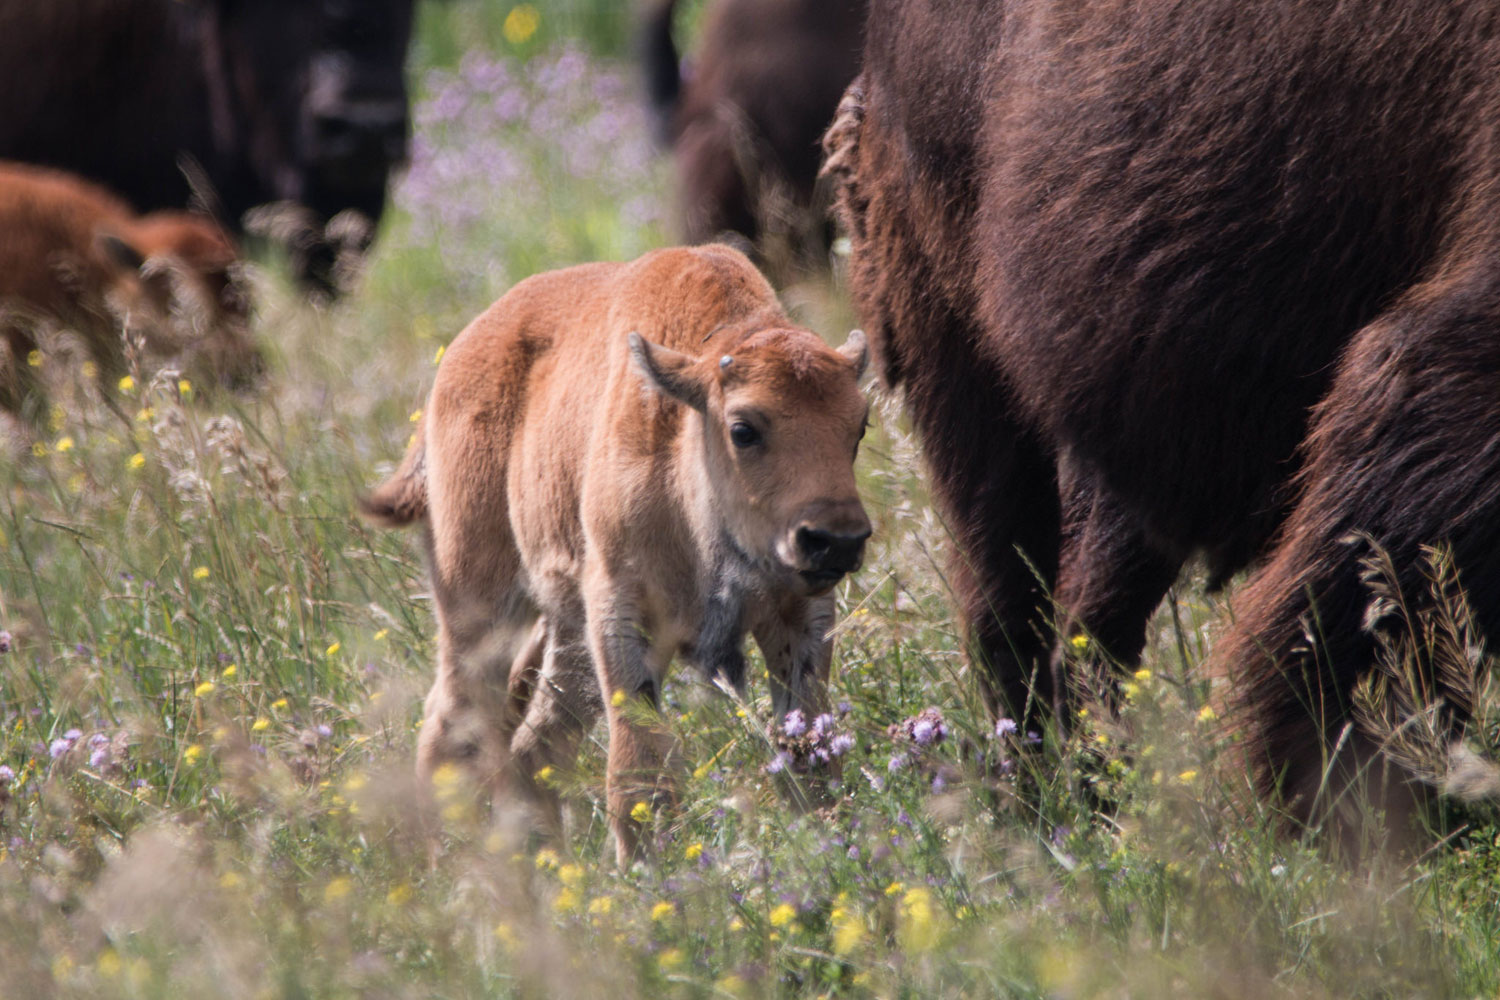 World's first in vitro bison calves born at U of S